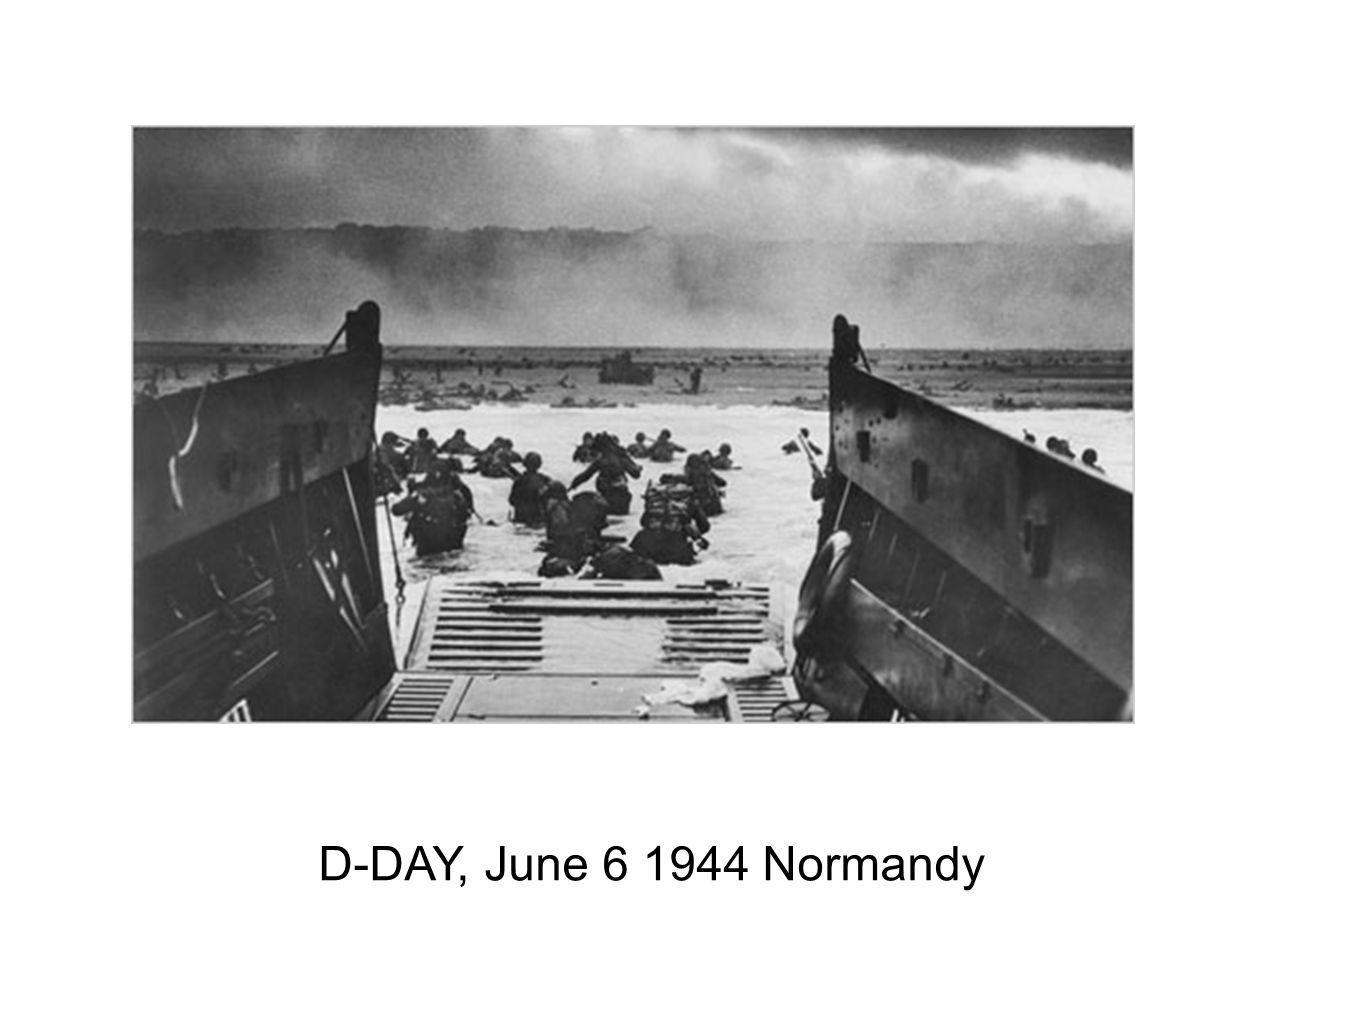 D-DAY, June 6 1944 Normandy